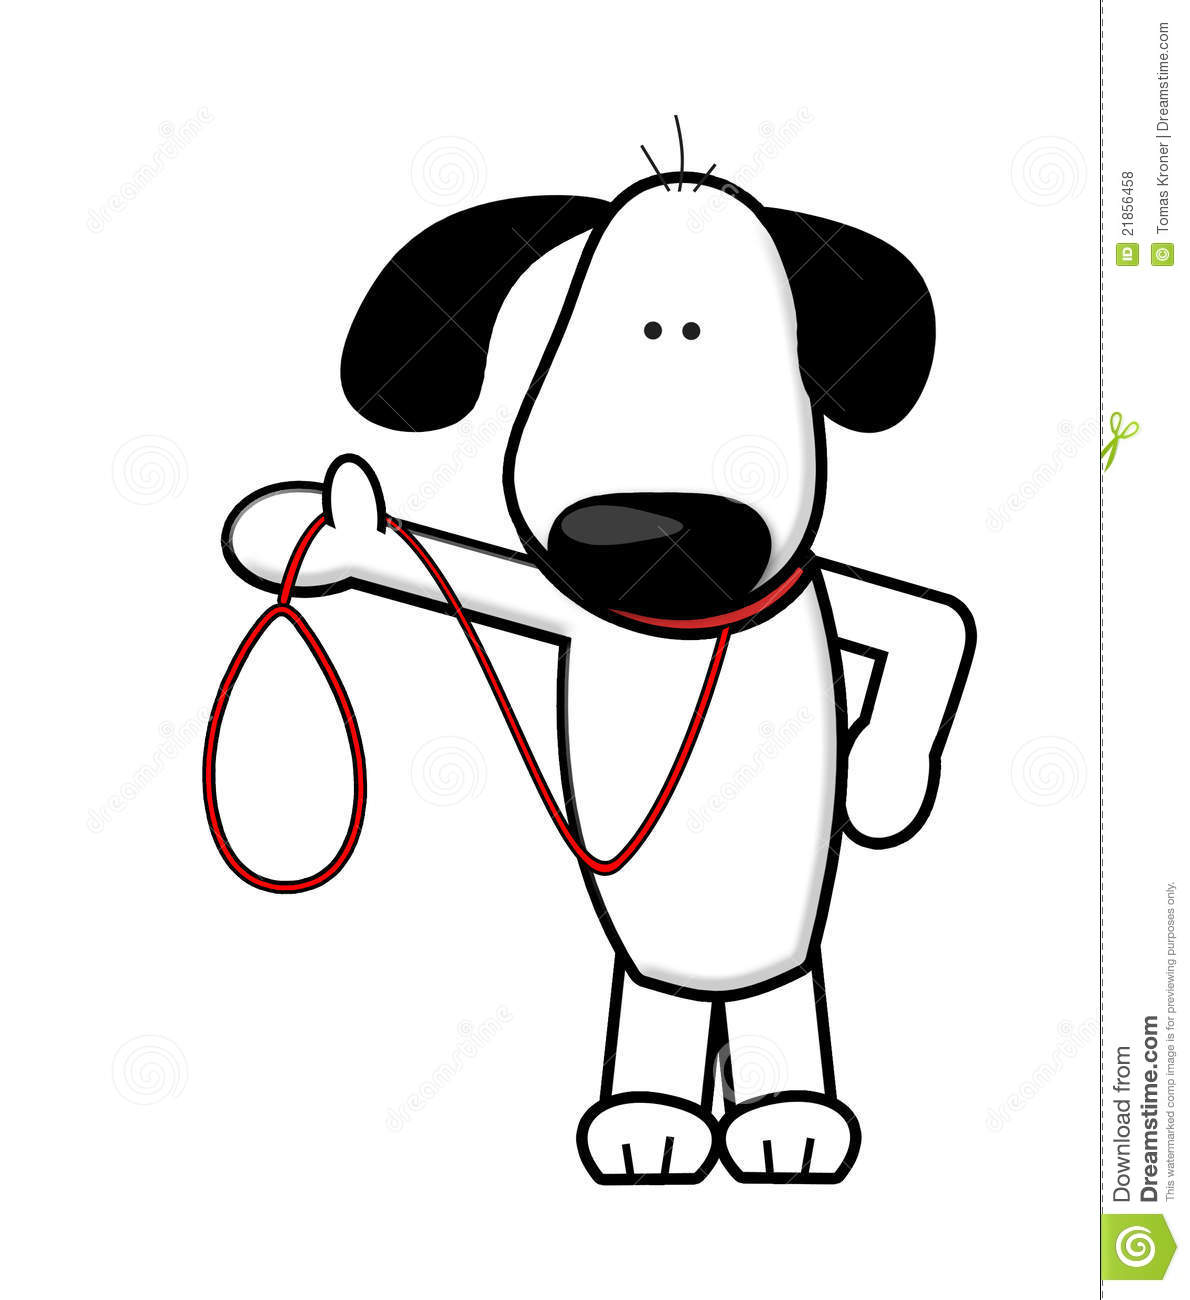 Dog Walking Cartoon Royalty Free Stock Photos